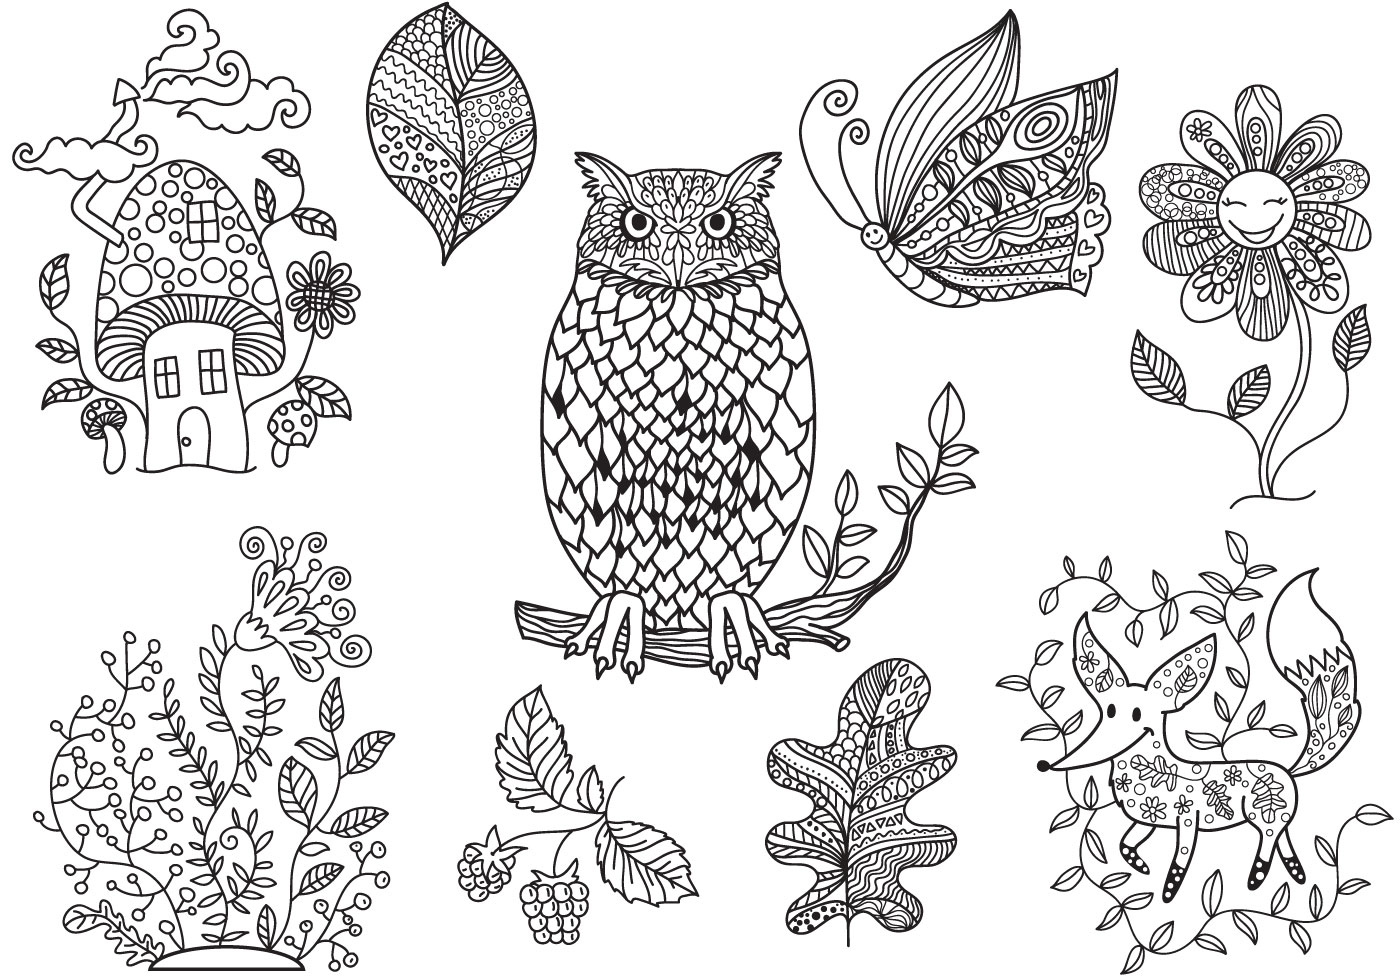 enchanted world coloring pages - photo#30